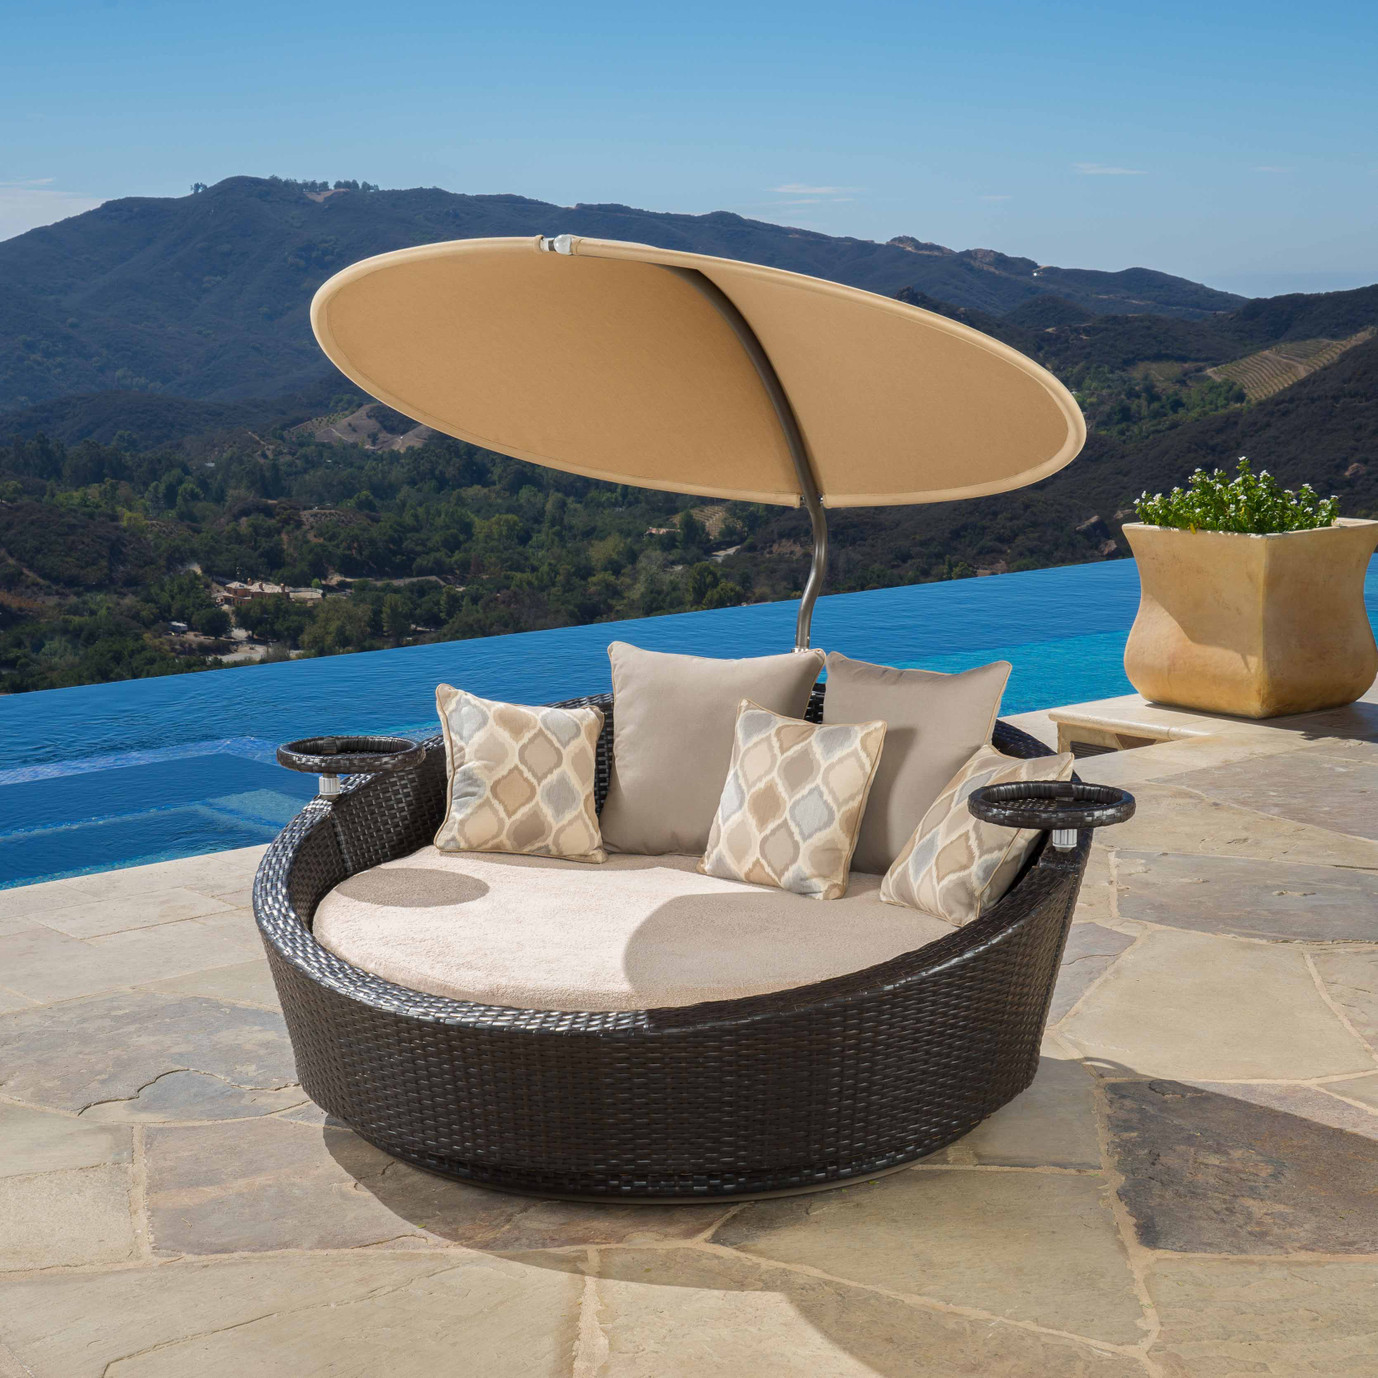 Portofino™ Comfort Sundial Day Bed - Heather Beige